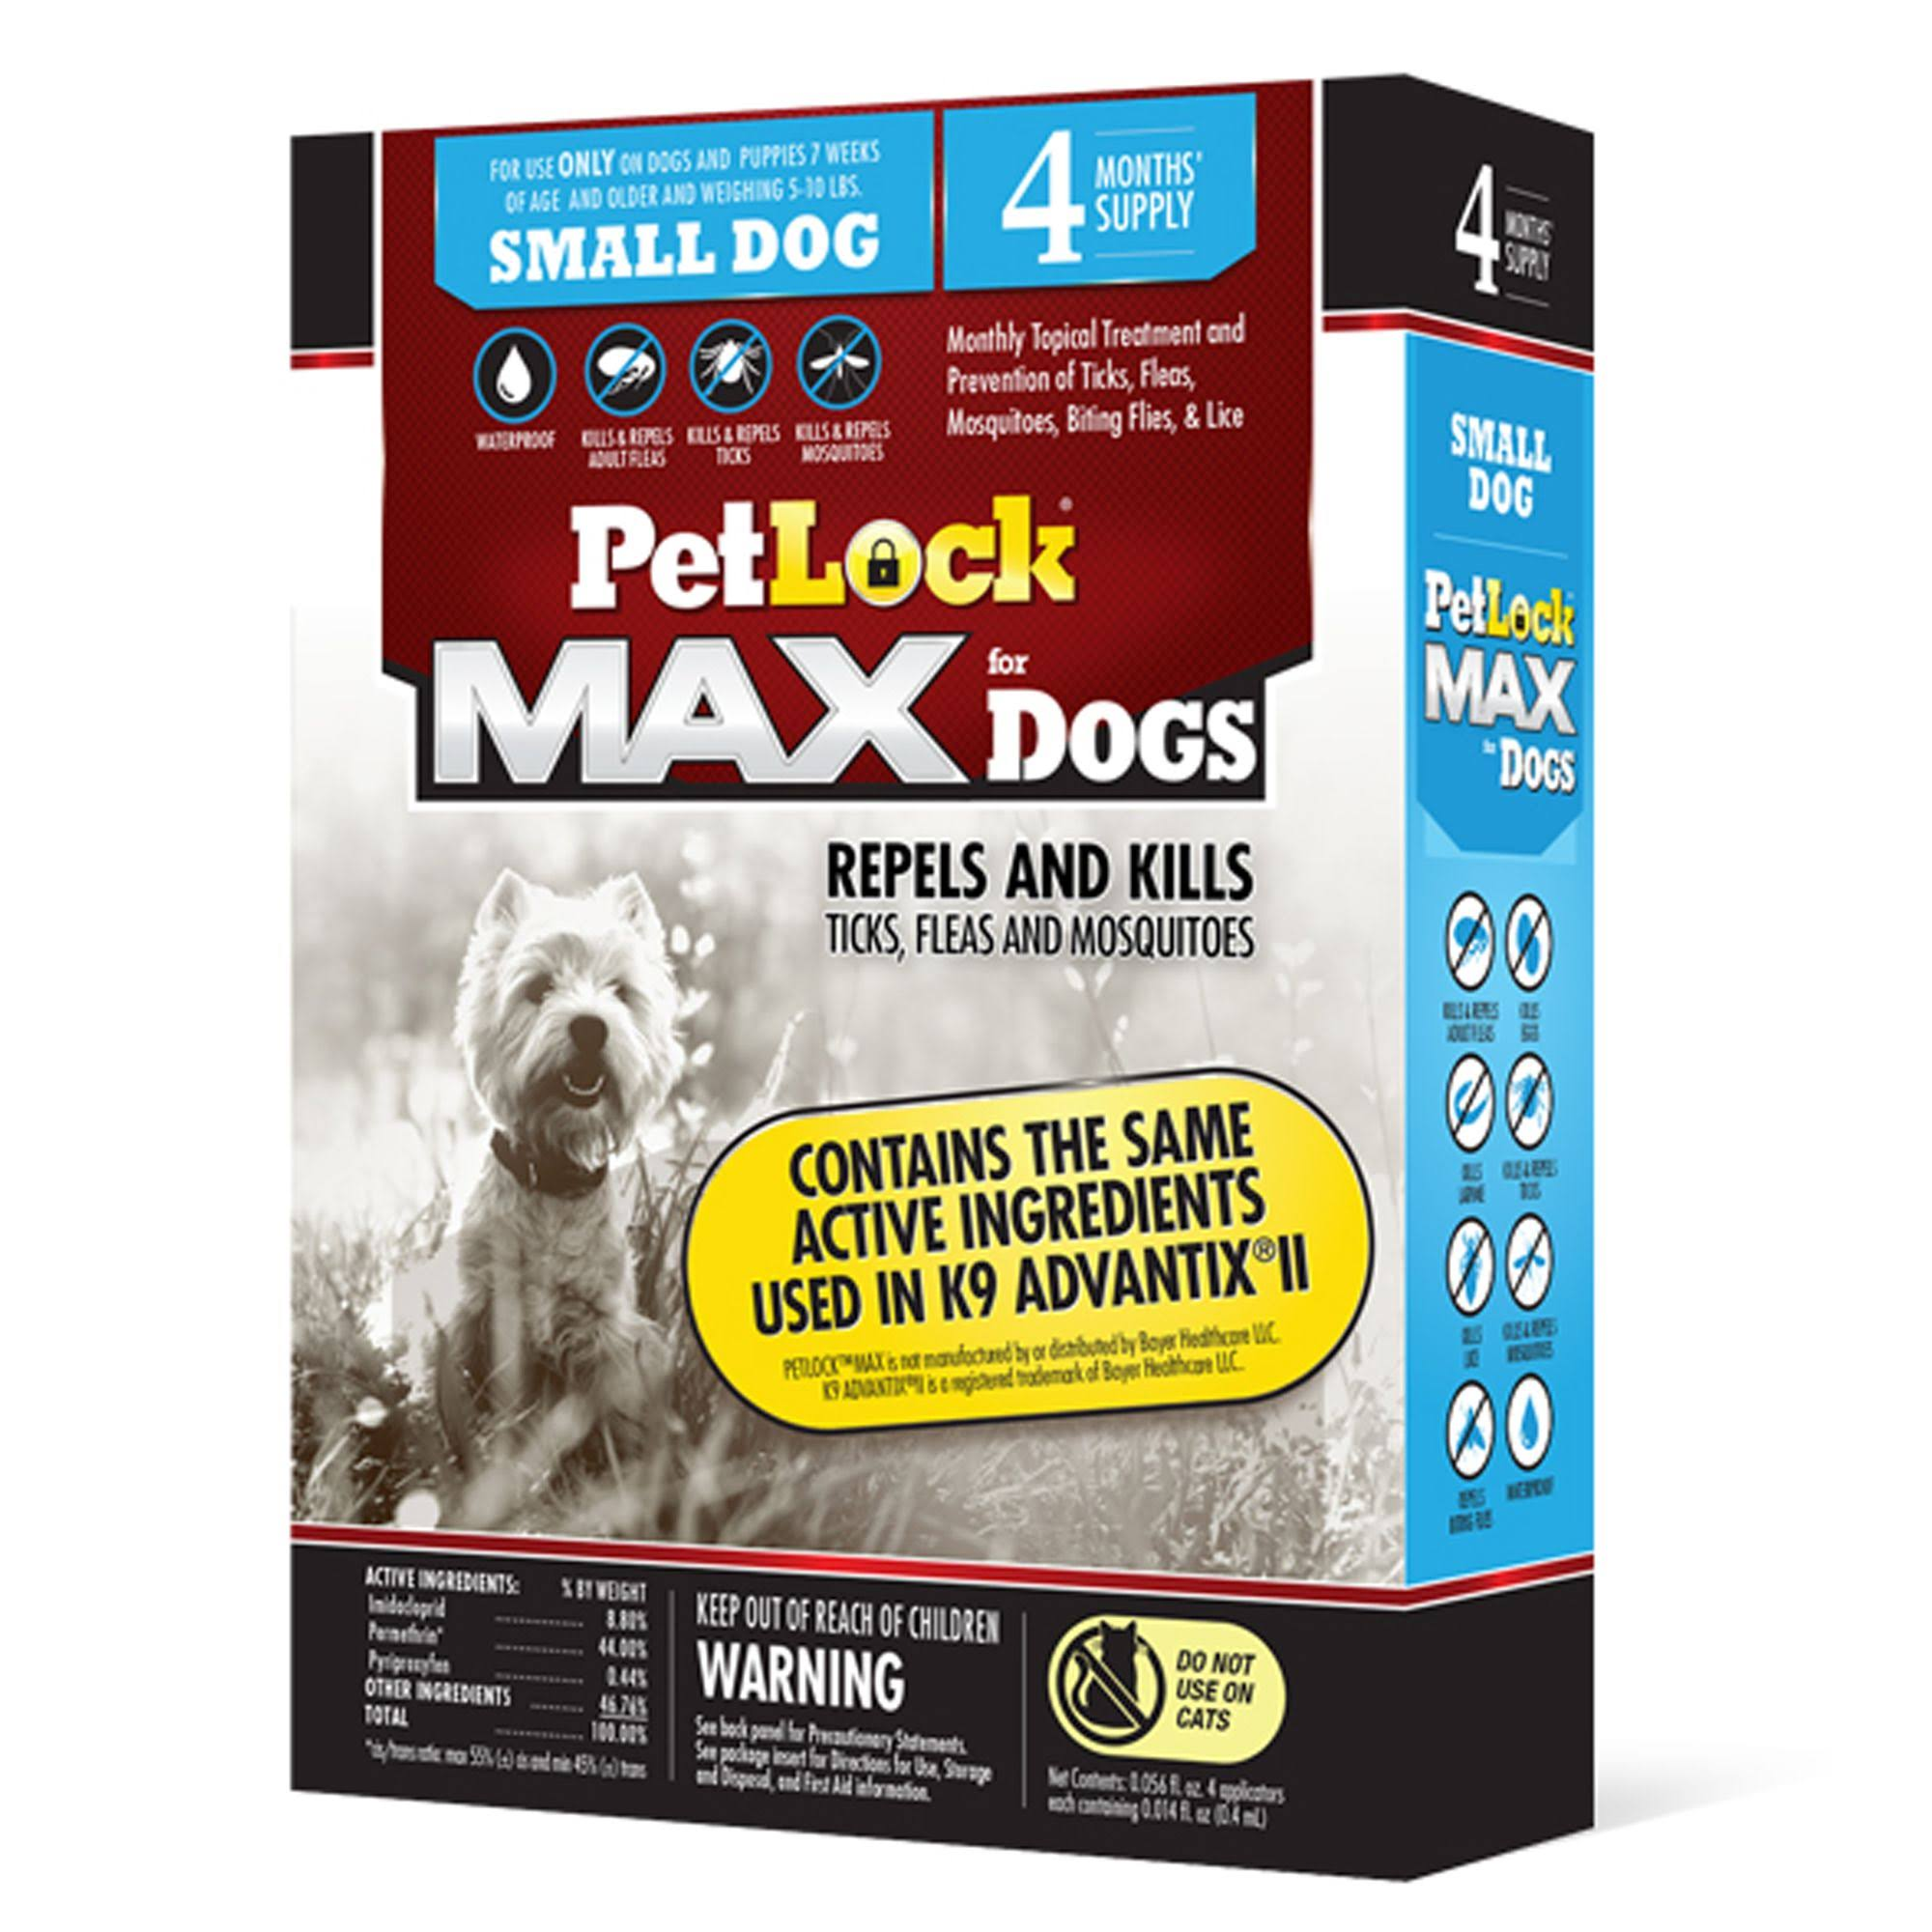 PetLock Max Flea and Tick Treatment for Dogs - 11lbs